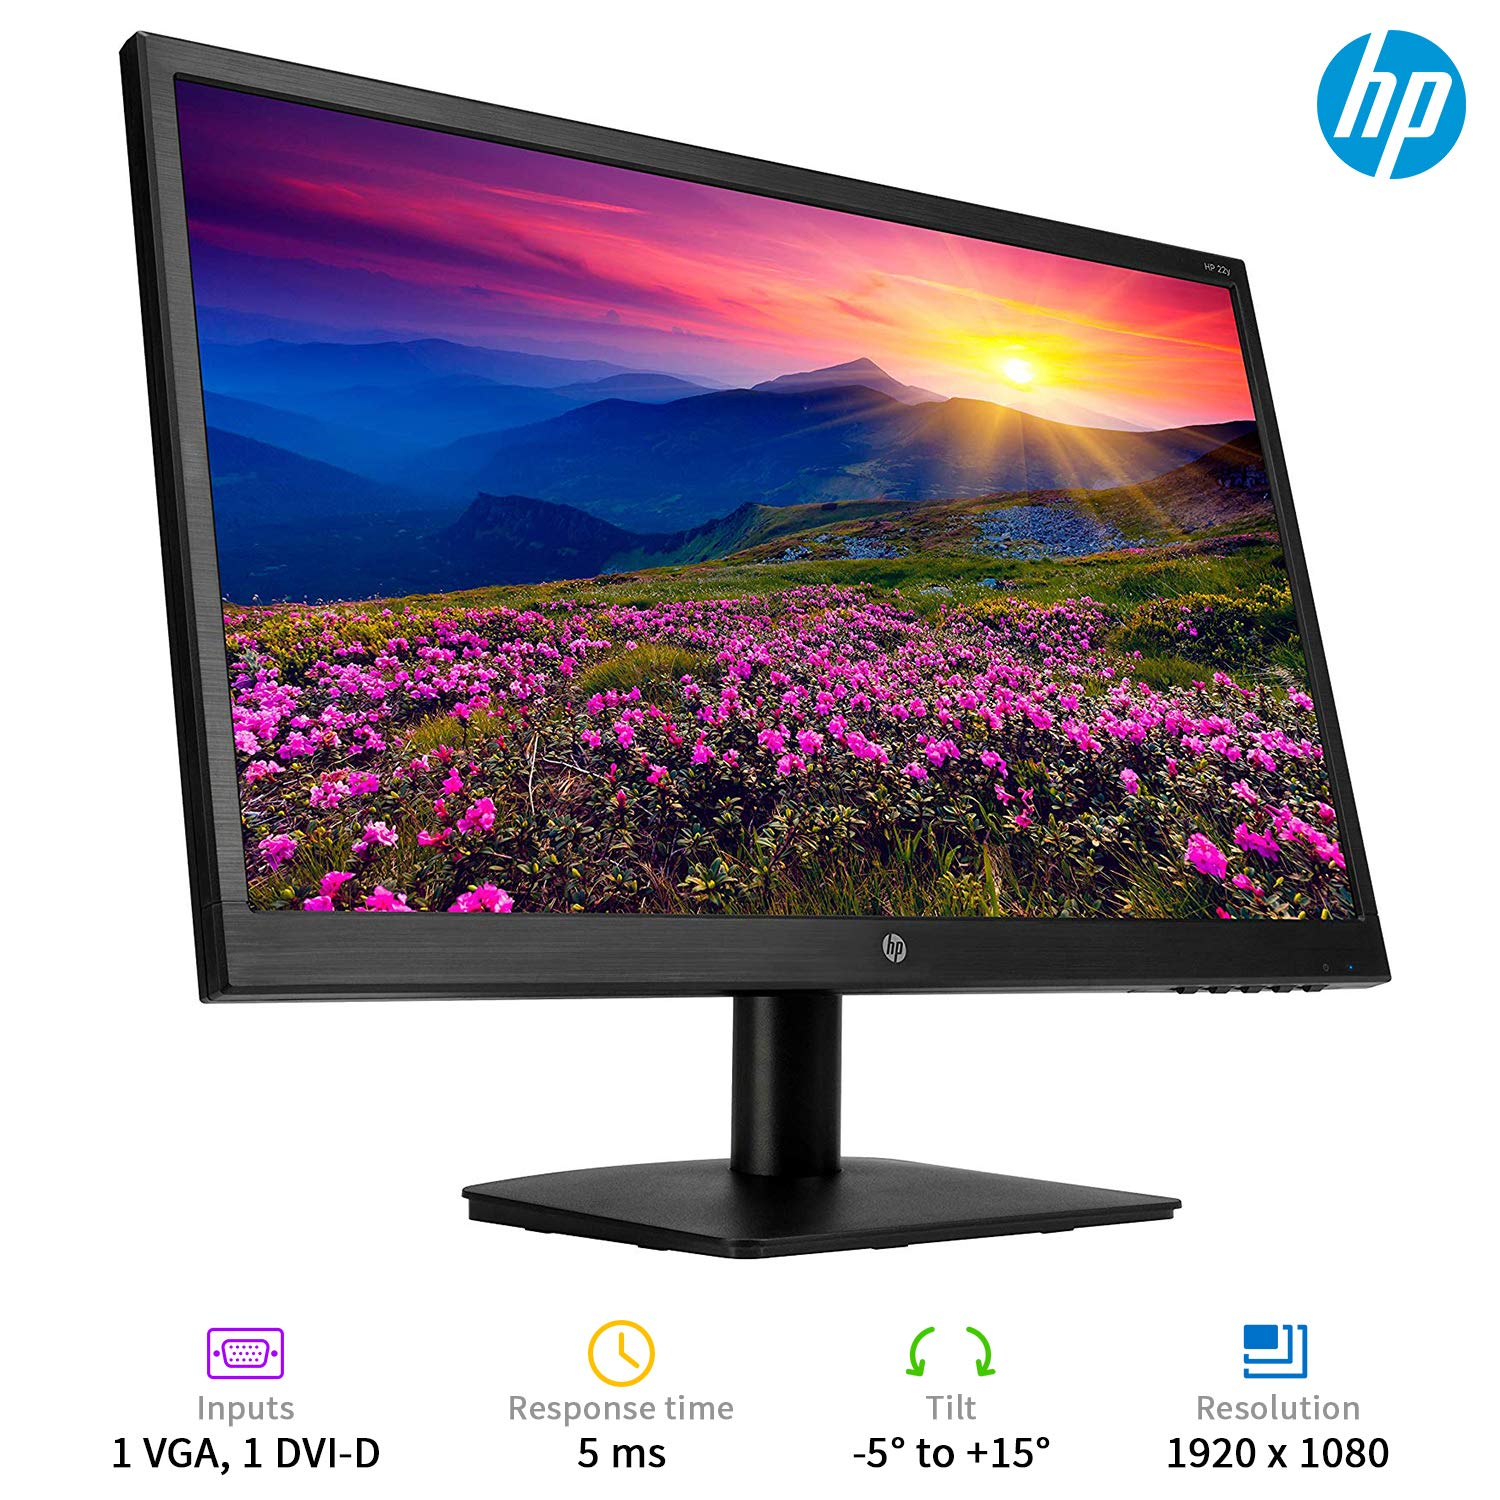 HP 22y 21.5-inch Full HD IPS Monitor